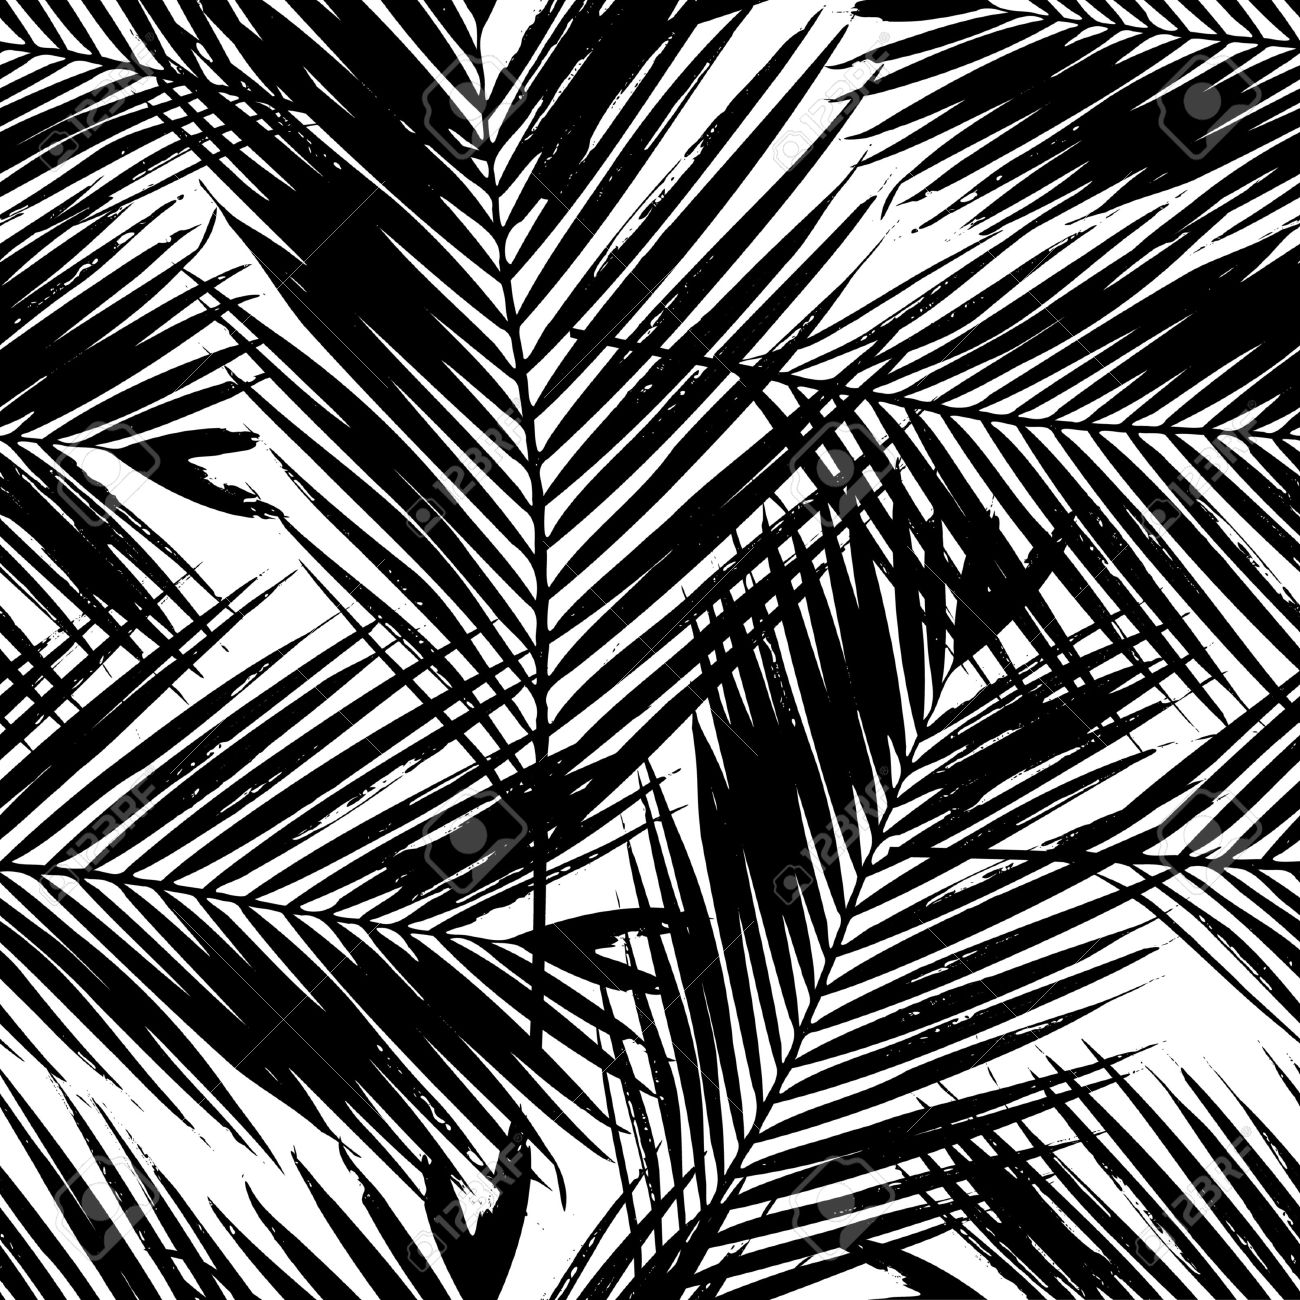 Seamless repeating pattern with silhouettes of palm tree leaves in black on white background stock